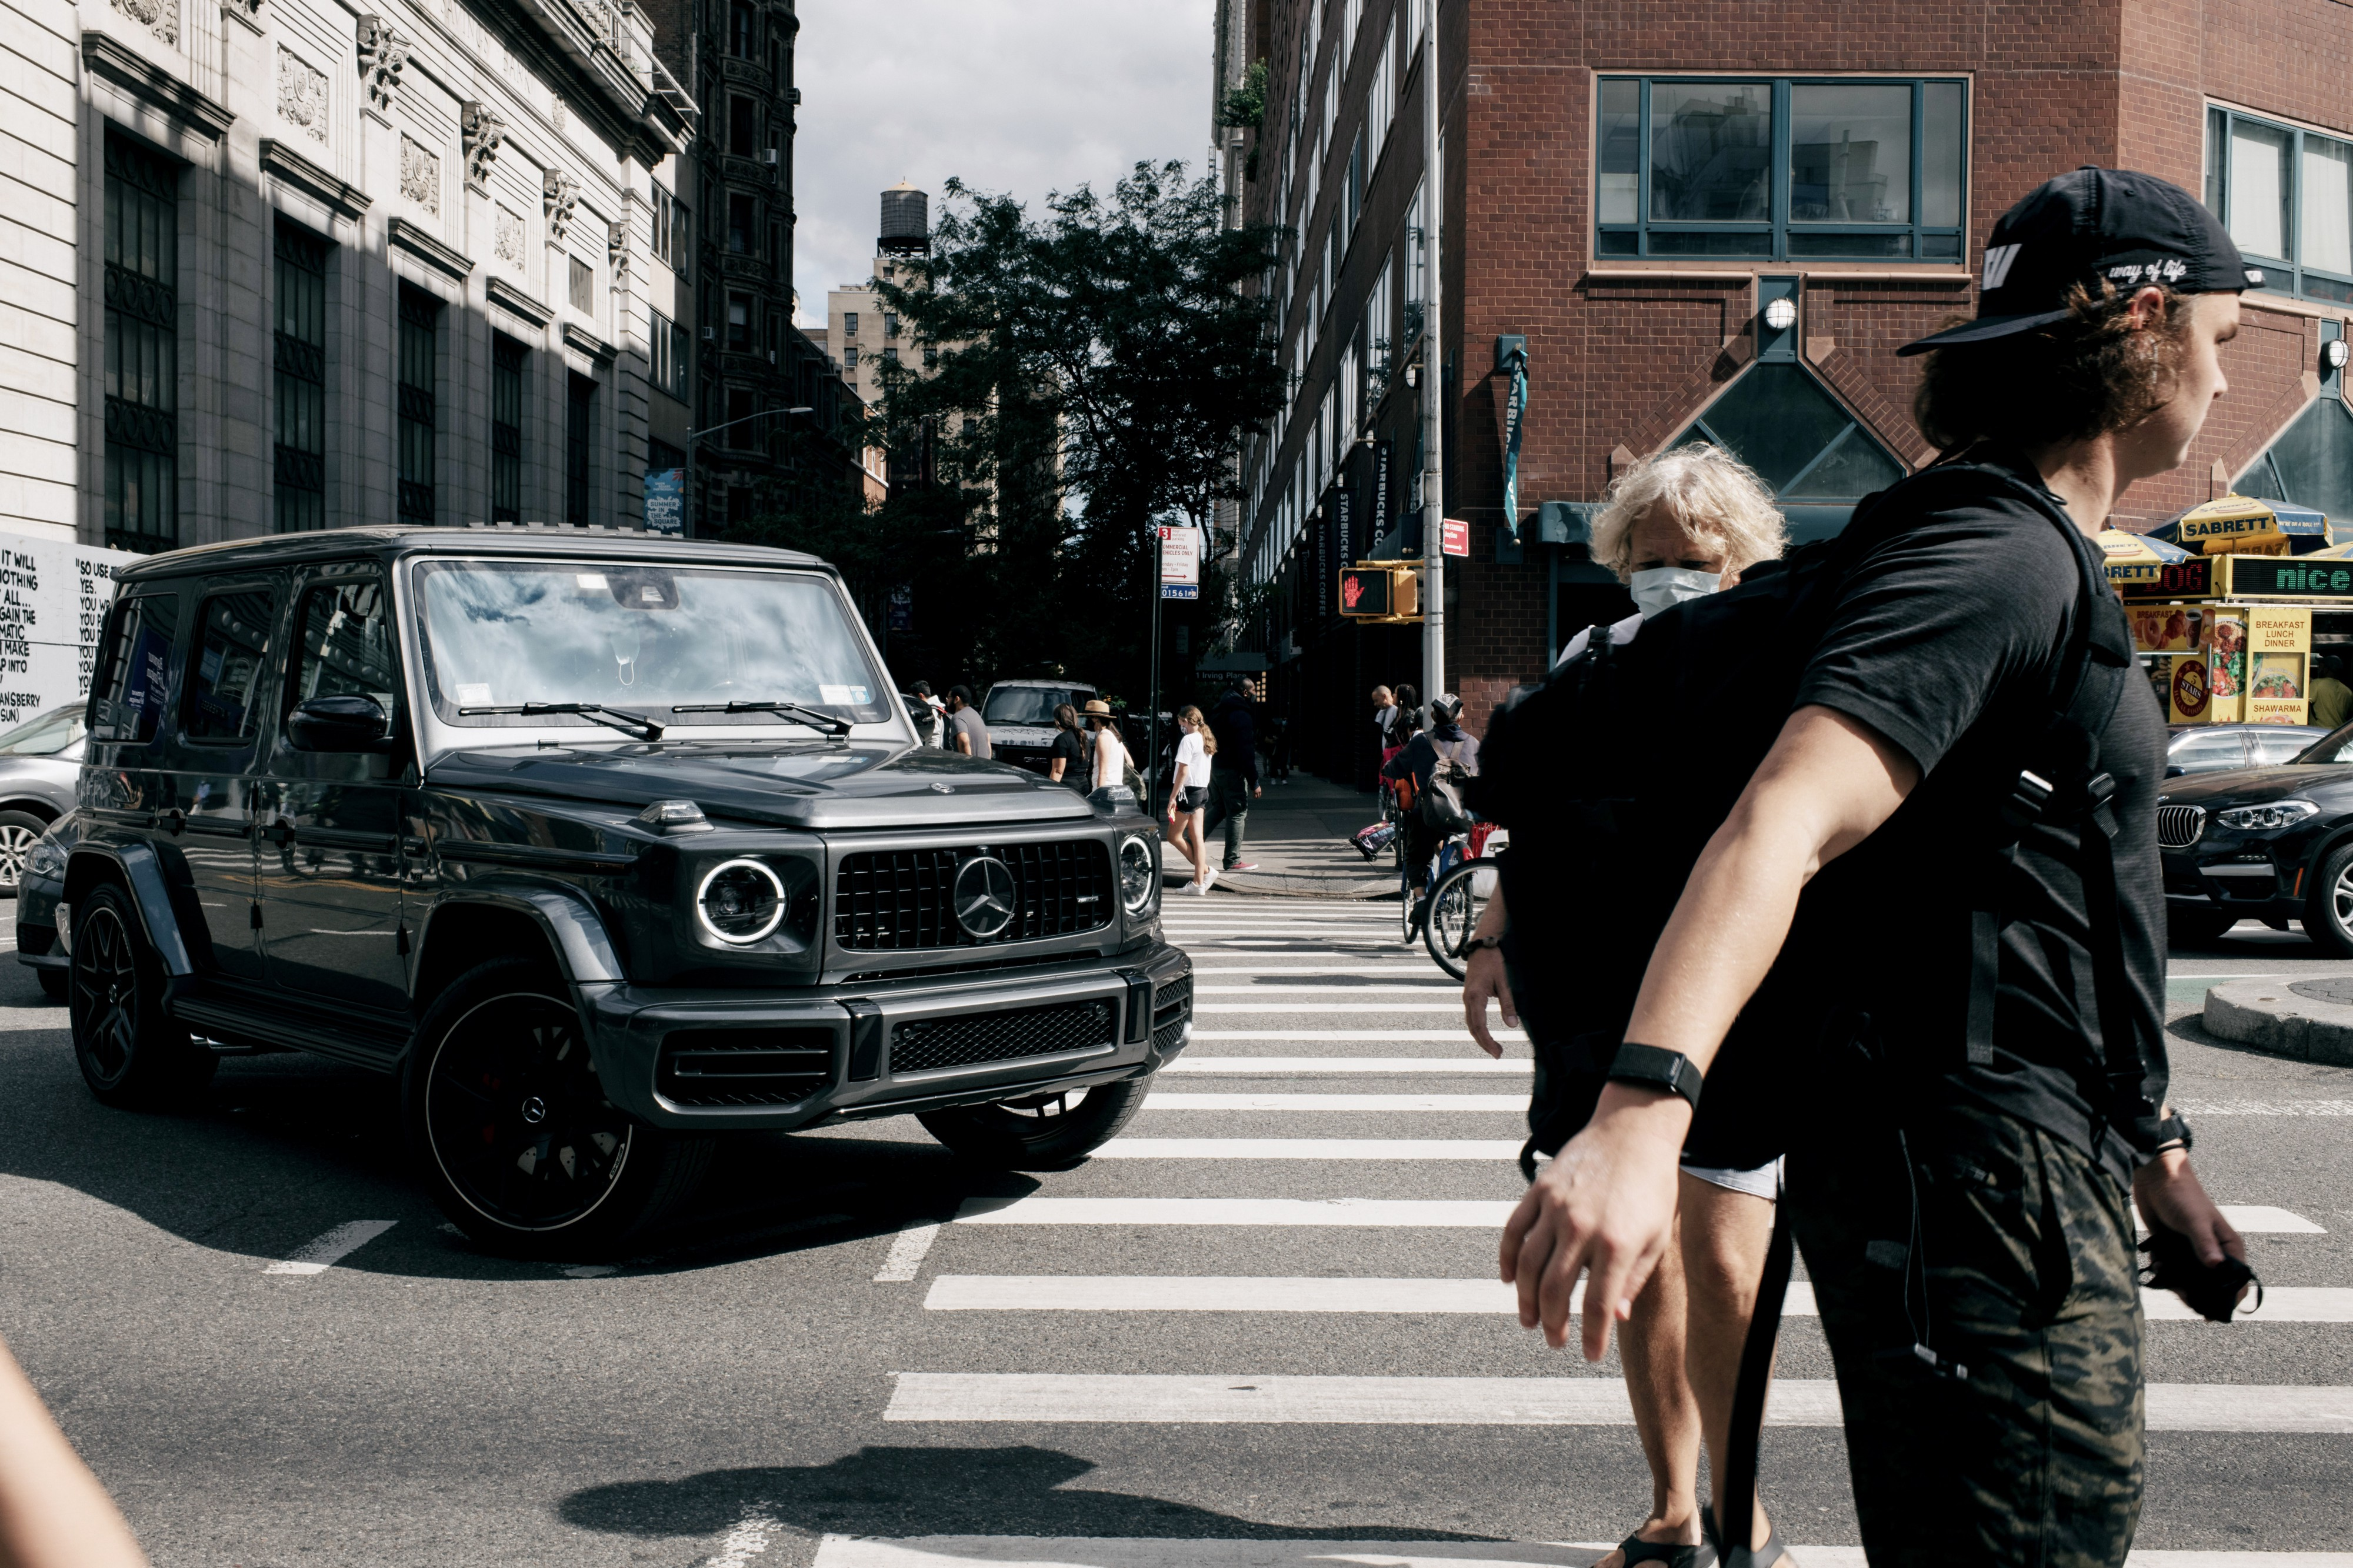 A Jeep turns into a crosswalk, where pedestrians are walking.